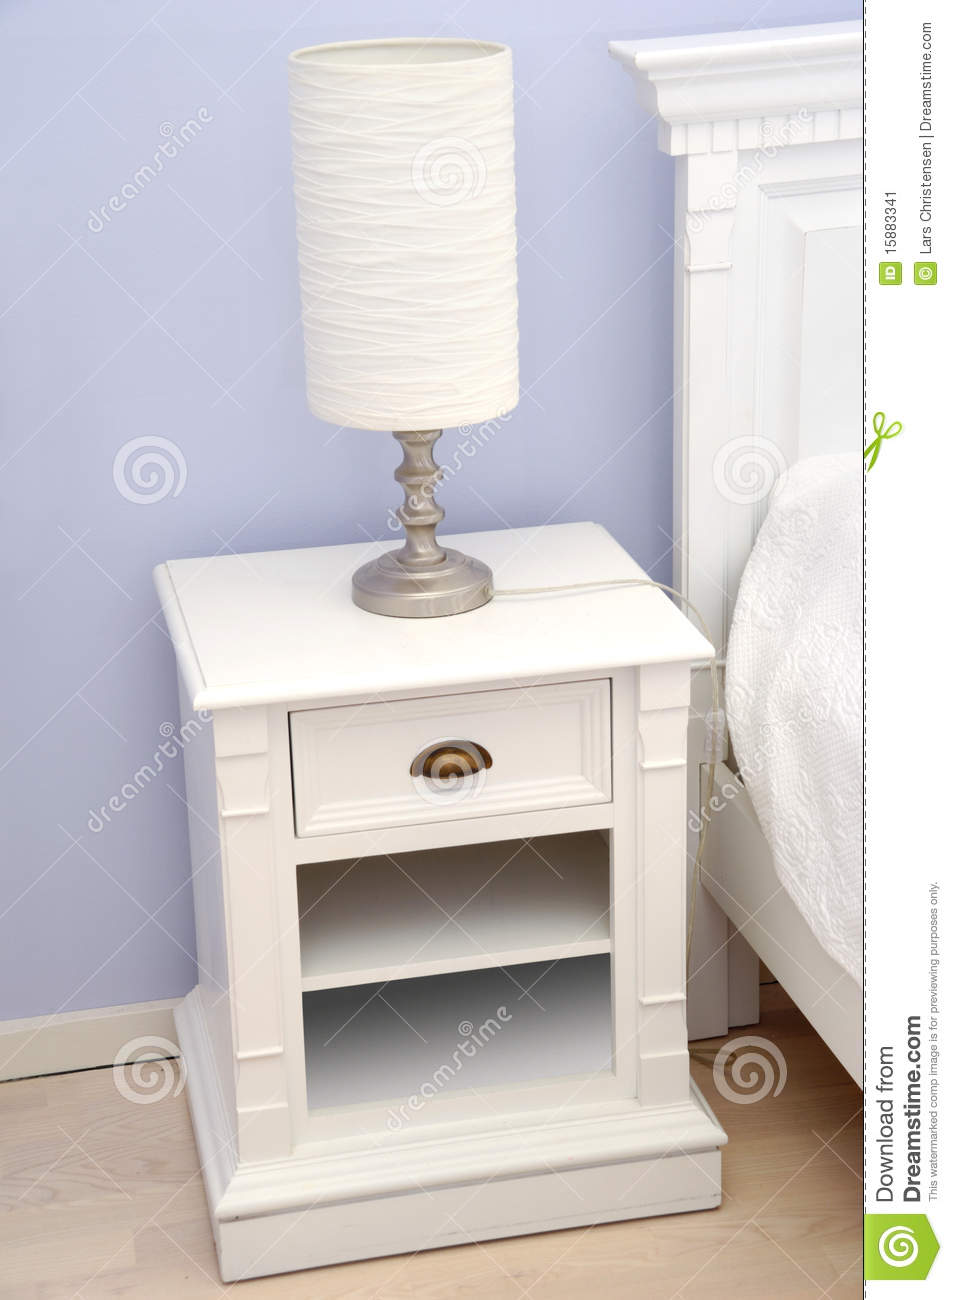 Bedside table with lamp stock image image of furniture 15883341 - Table de nuit kartell ...